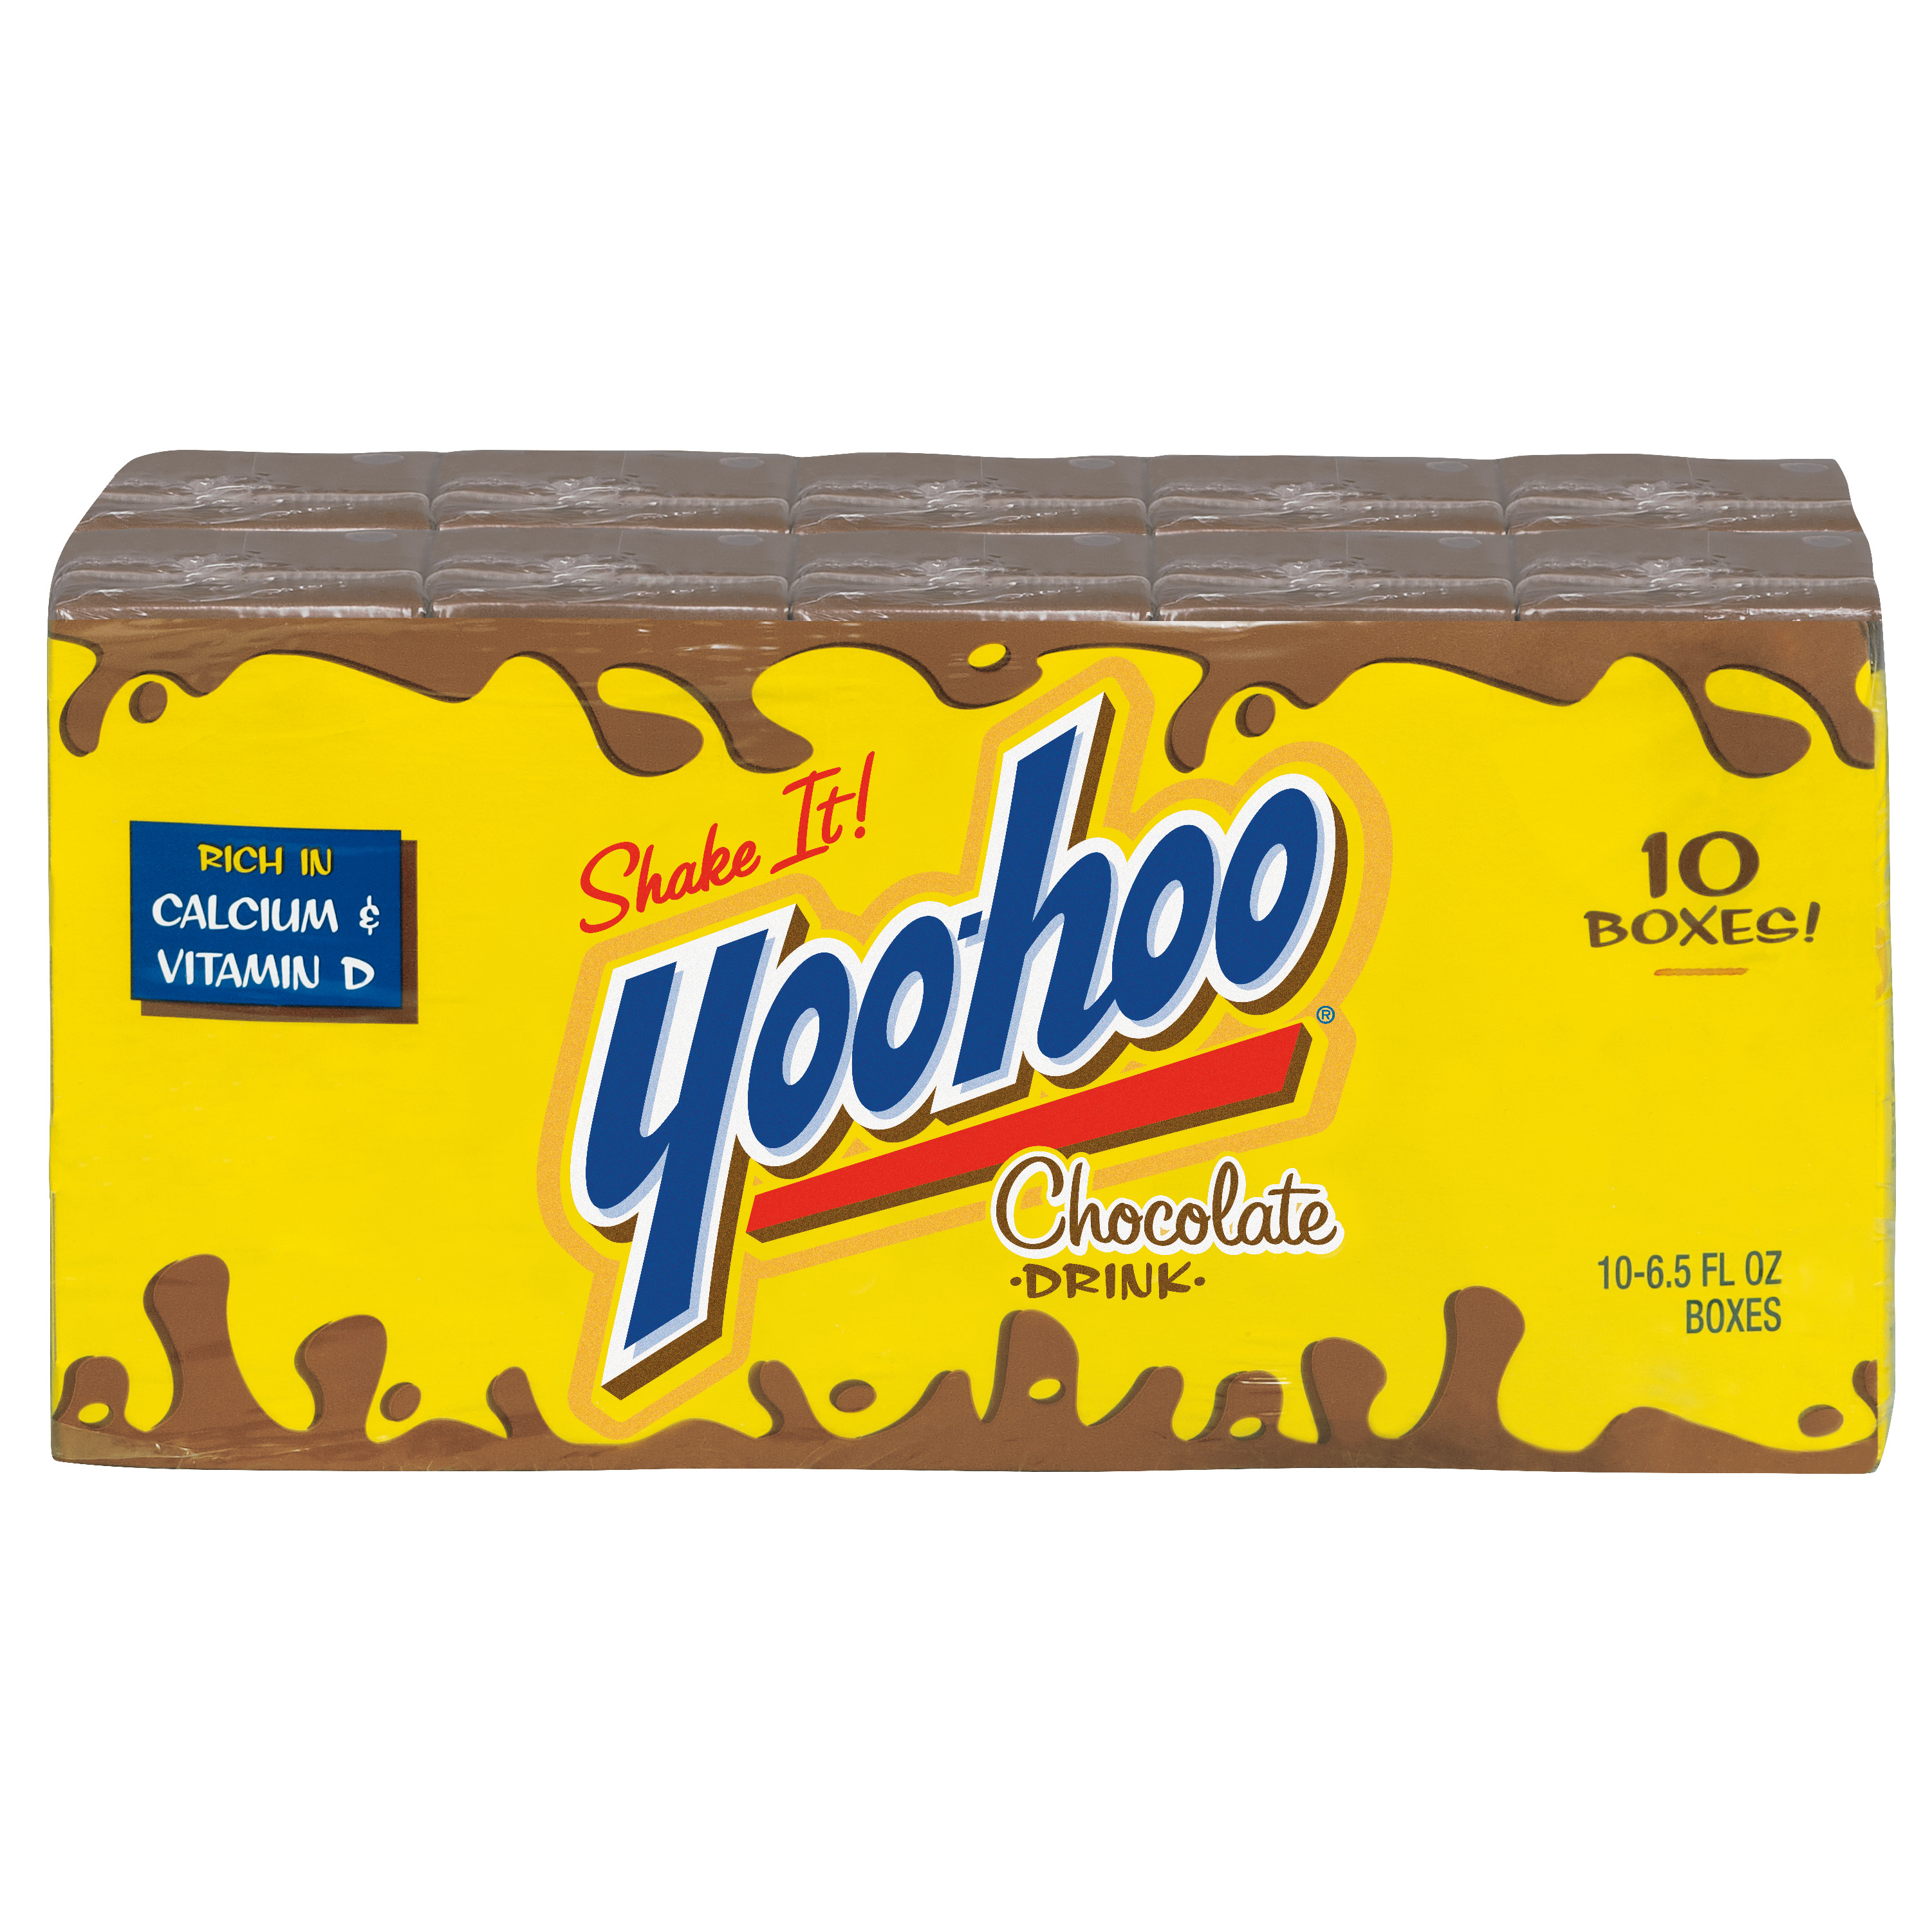 Yoo-hoo Chocolate Drink, 6.5 fl oz, 10 pack